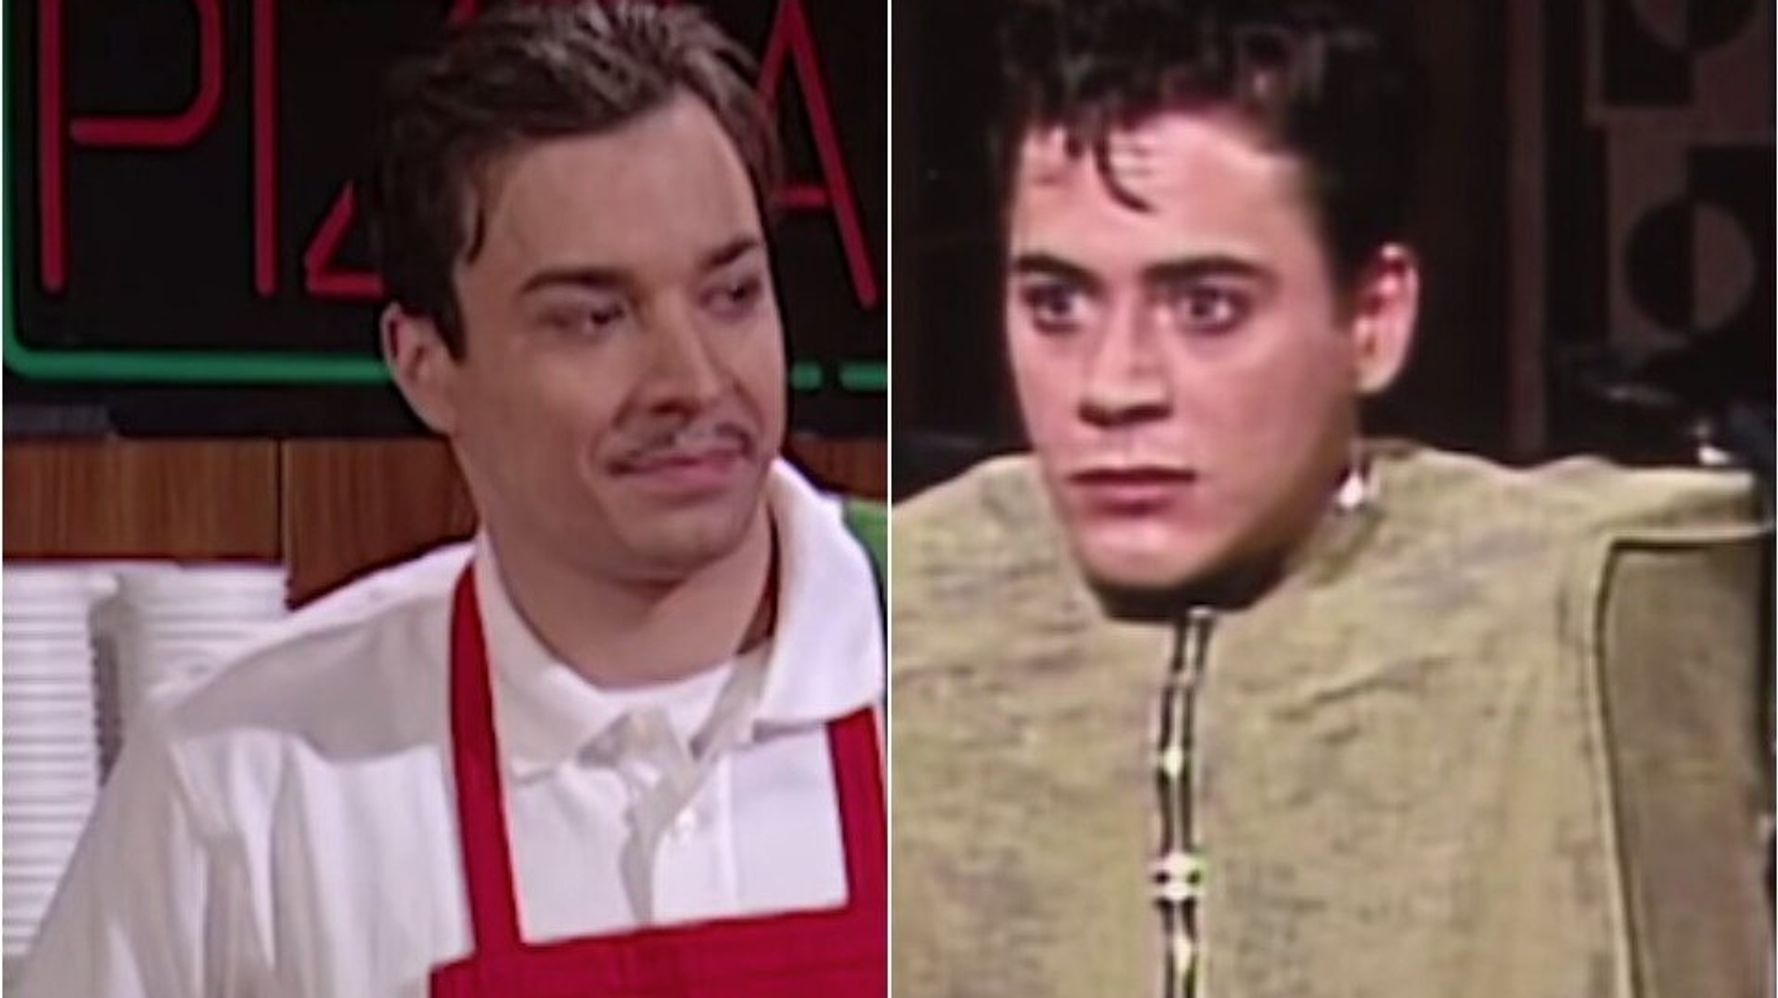 Westlake Legal Group 5e205c112200003200472db9 Robert Downey Jr. And Jimmy Fallon Share Their Worst Unaired 'SNL' Sketches